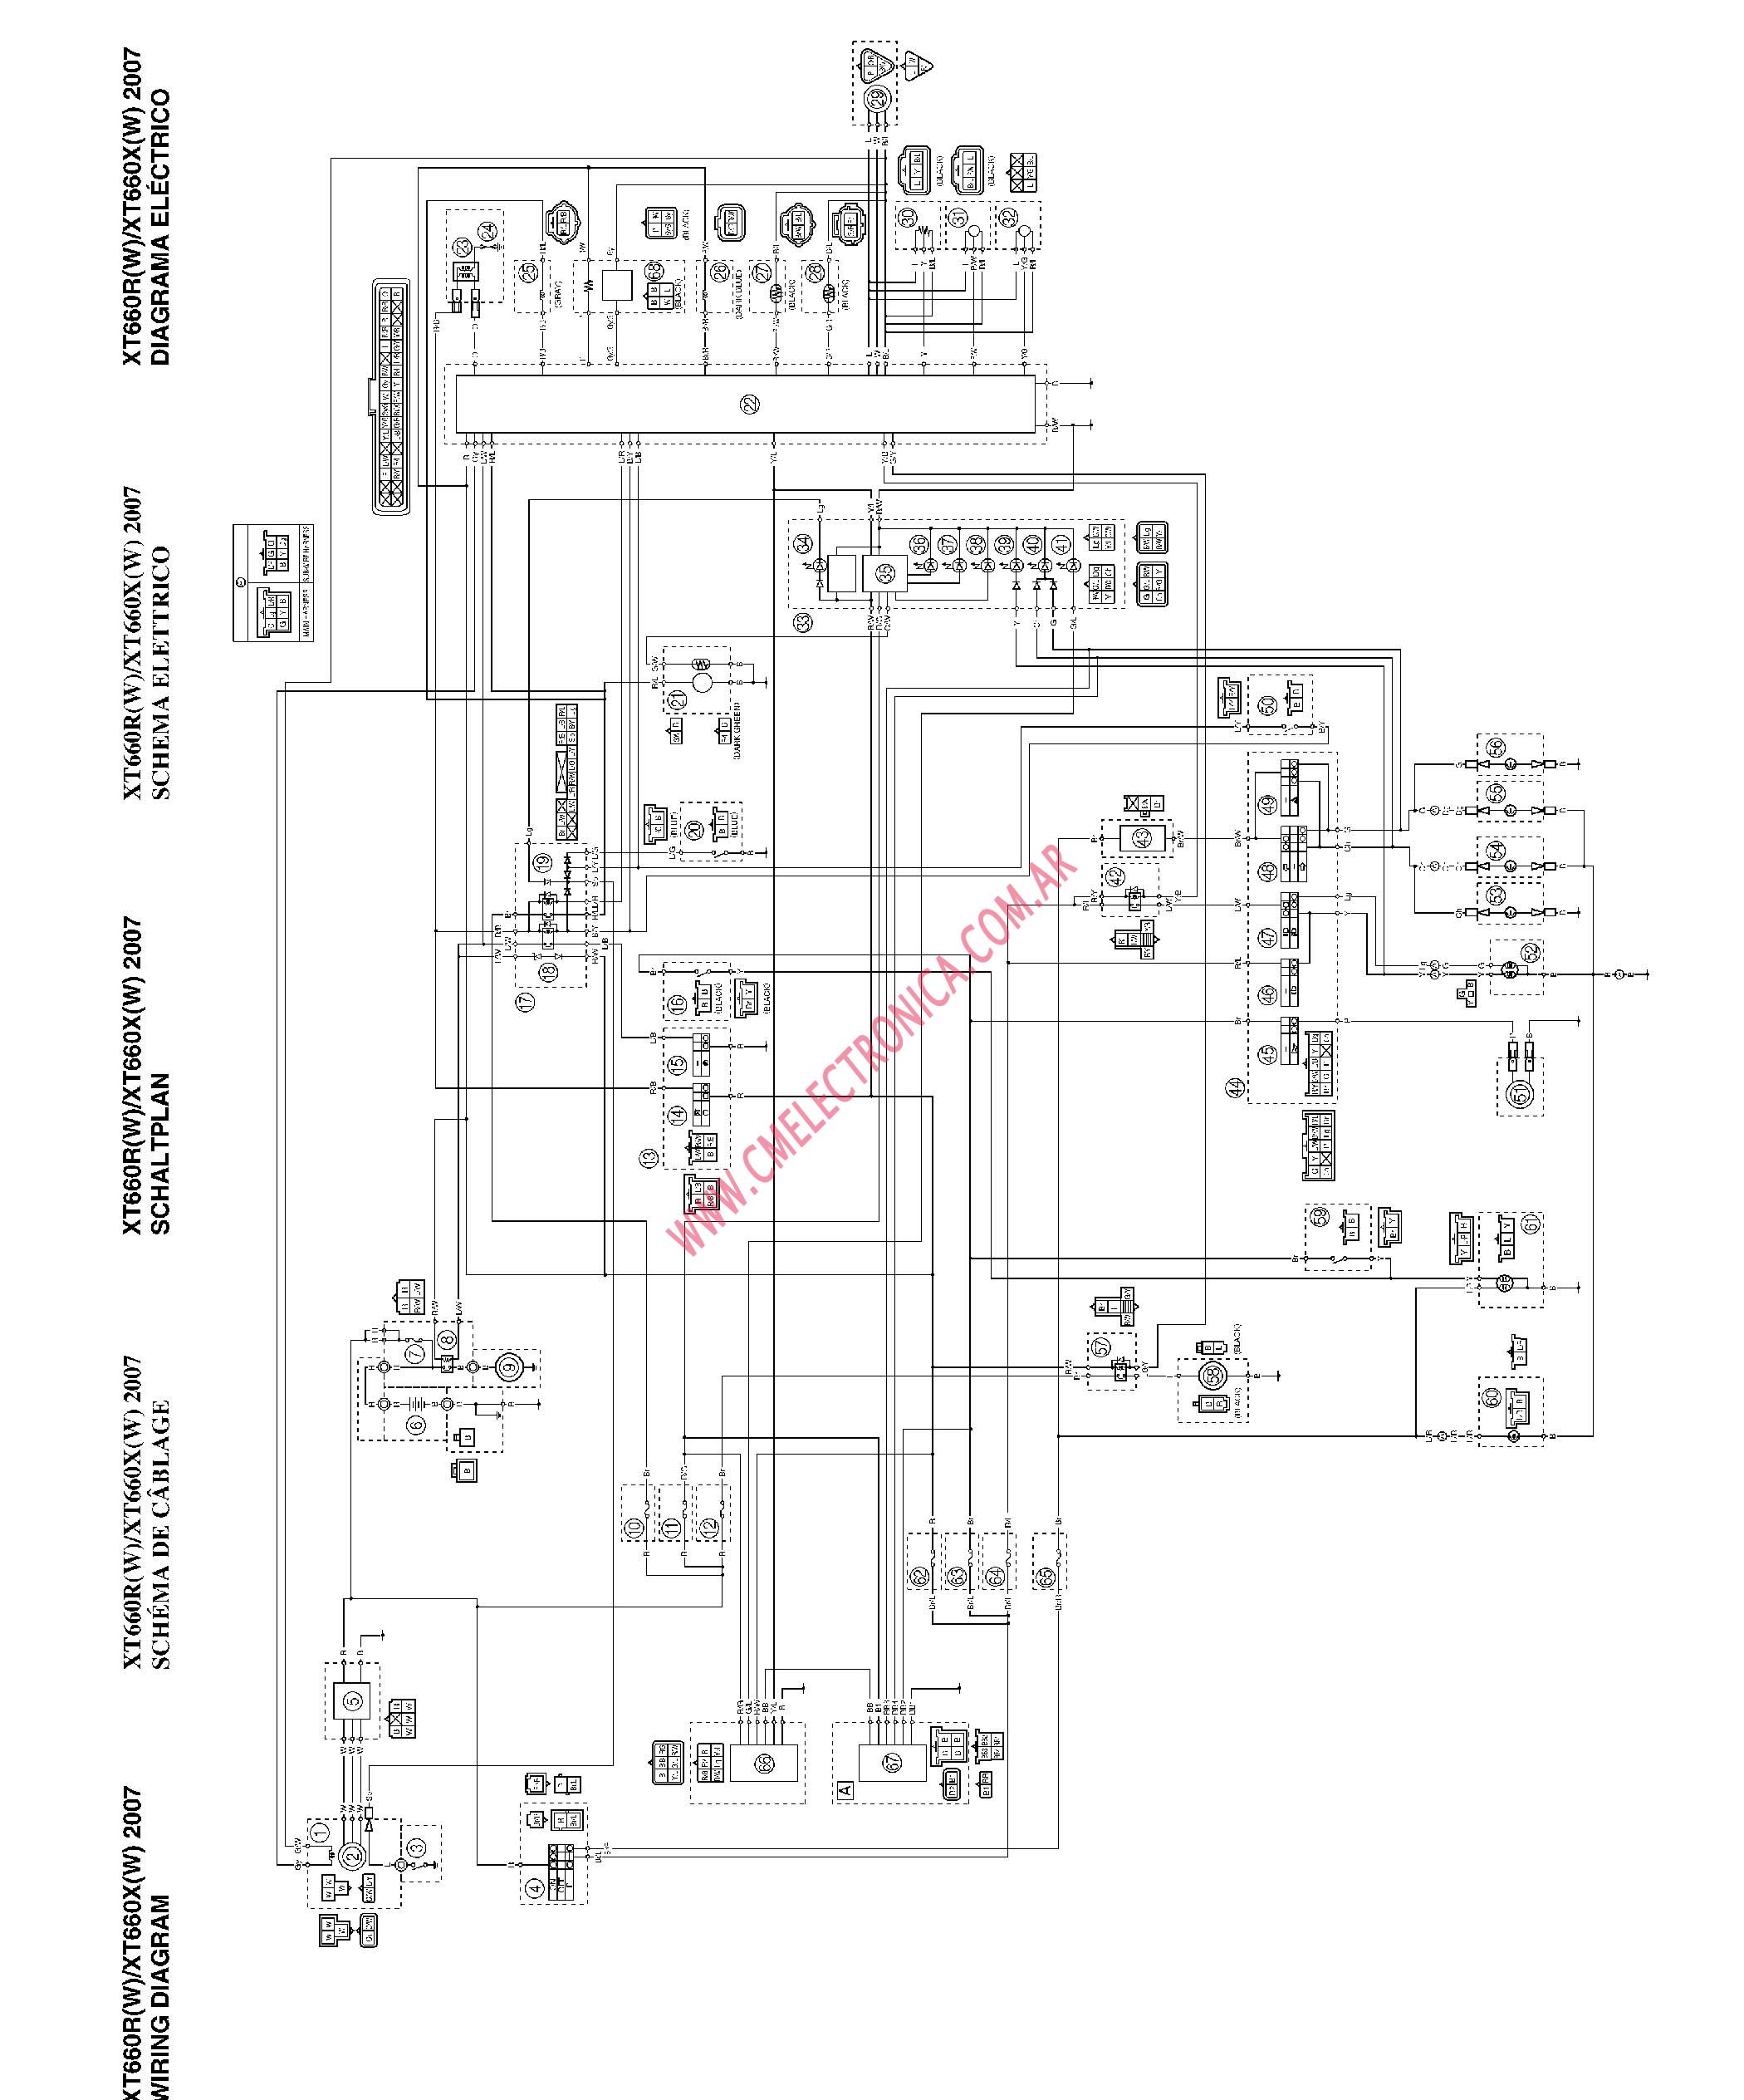 Yamaha Kodiak Atv Wiring Diagram